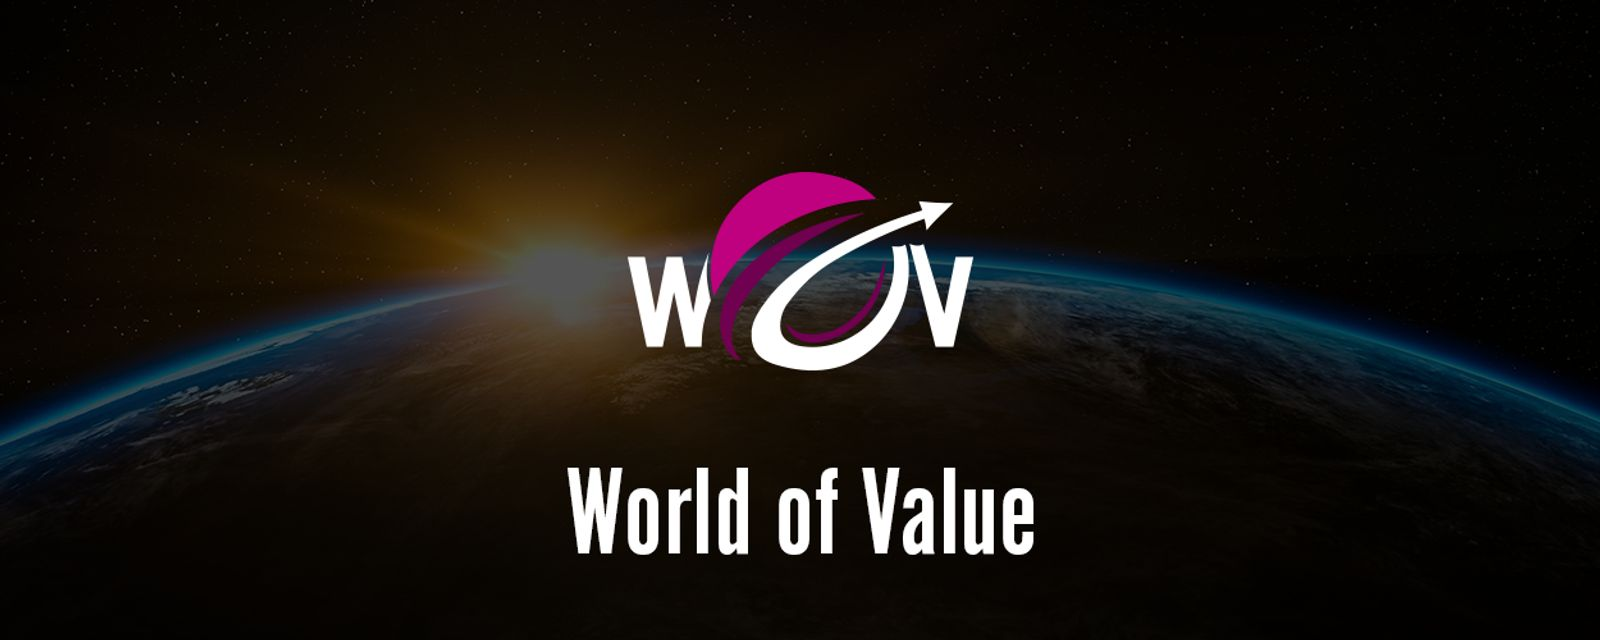 World of Value '18 Premium